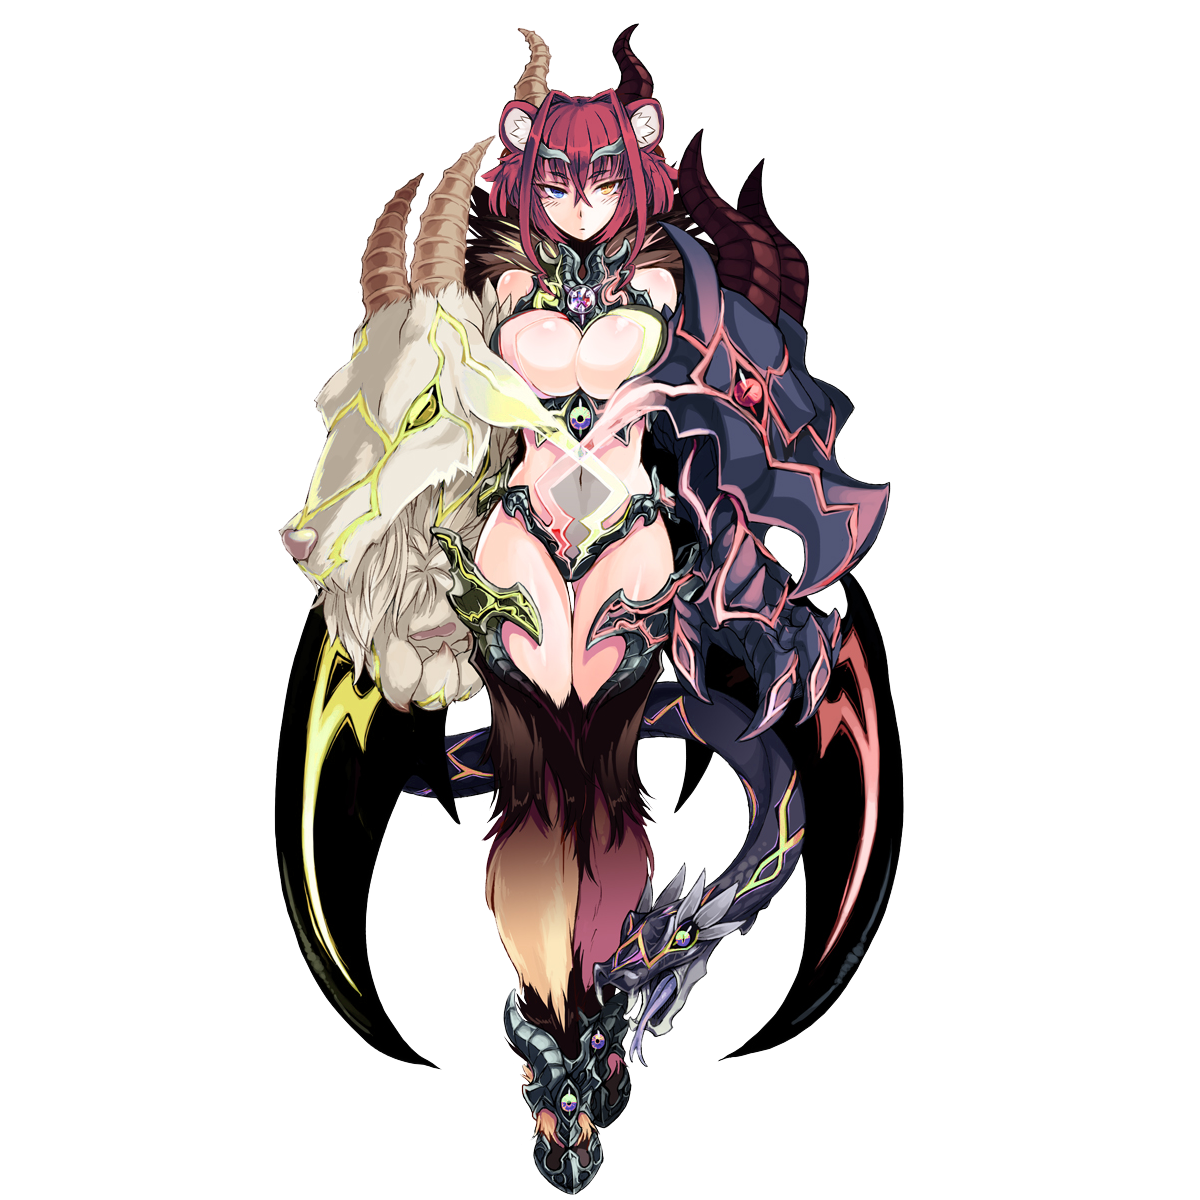 monster girl encyclopedia world guide i fallen maidens